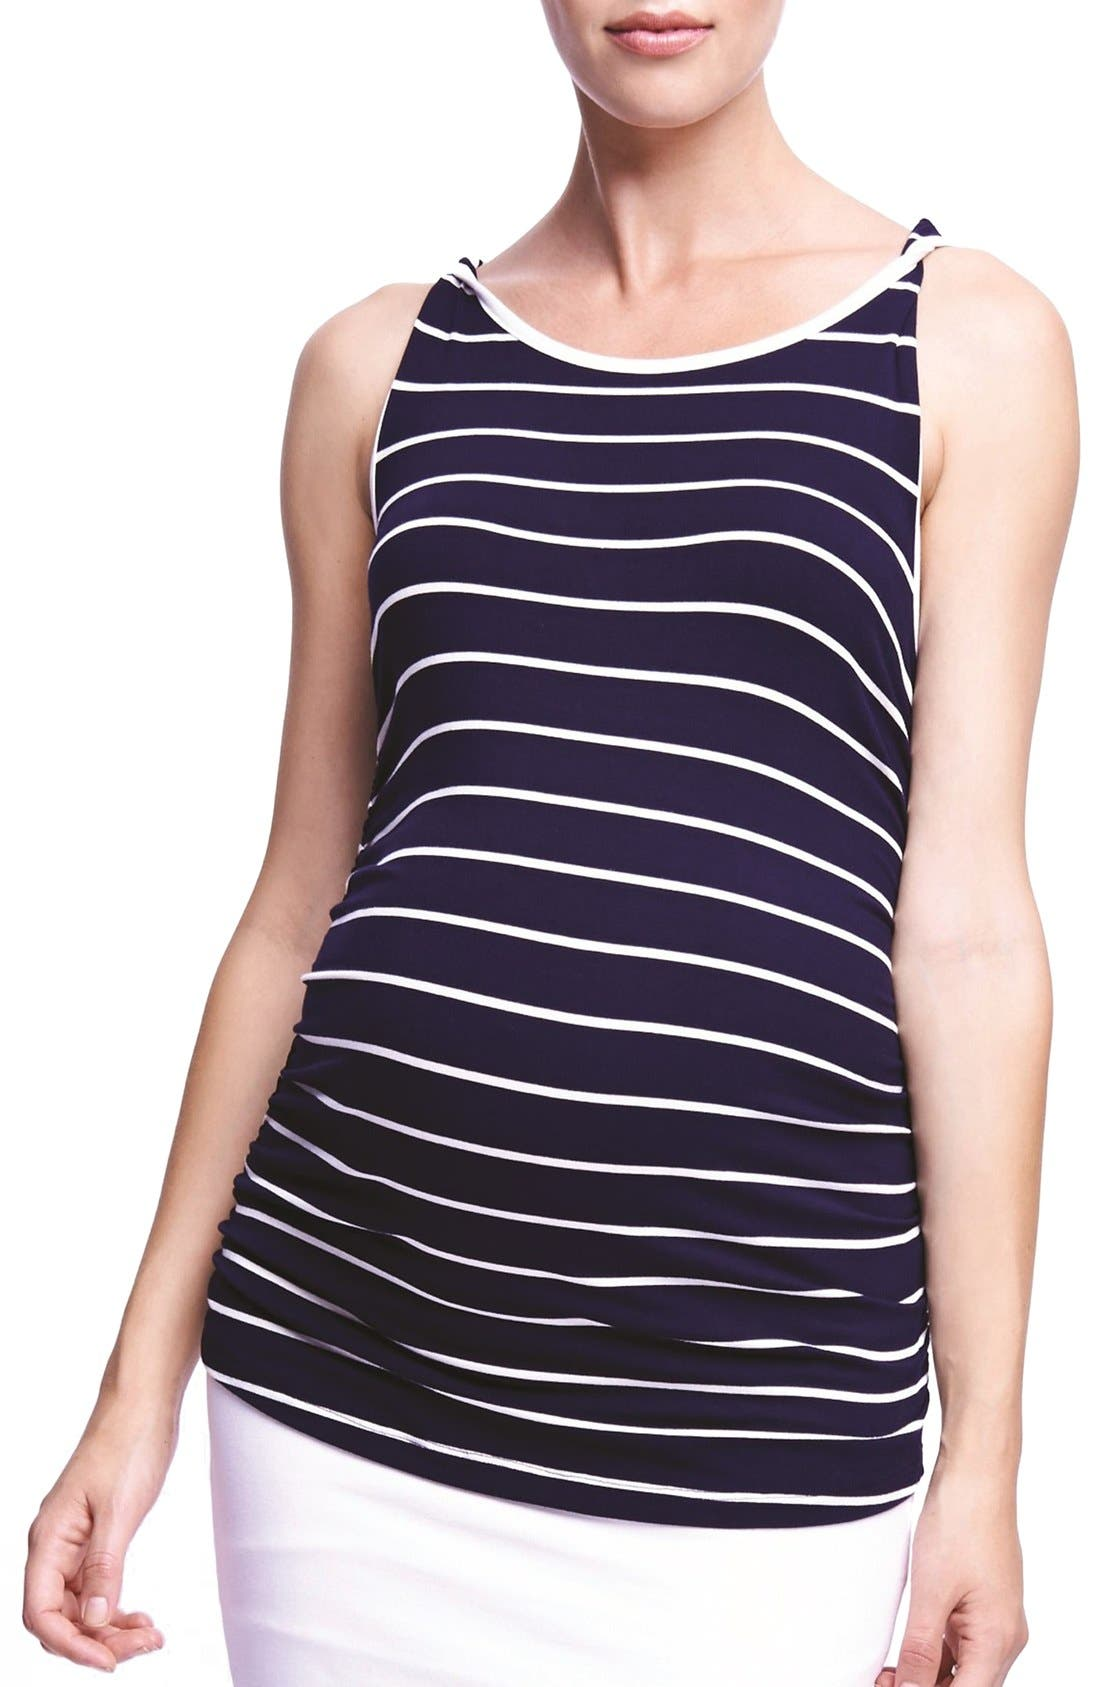 'Twist' Stripe Maternity Tank,                         Main,                         color, Navy/ White Stripe